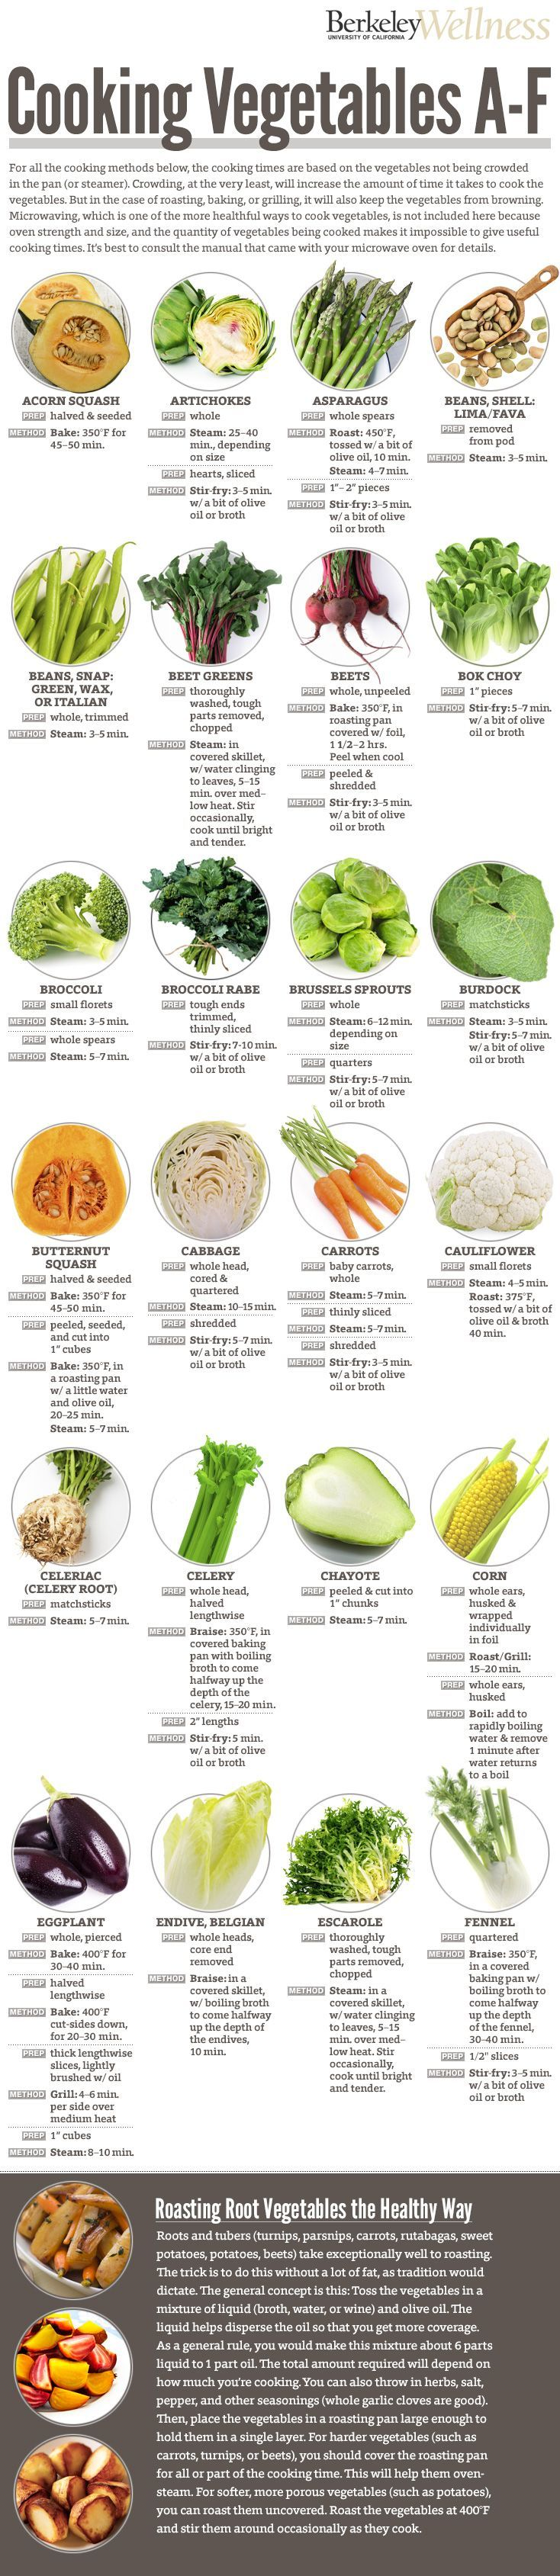 cooking veggies a-z